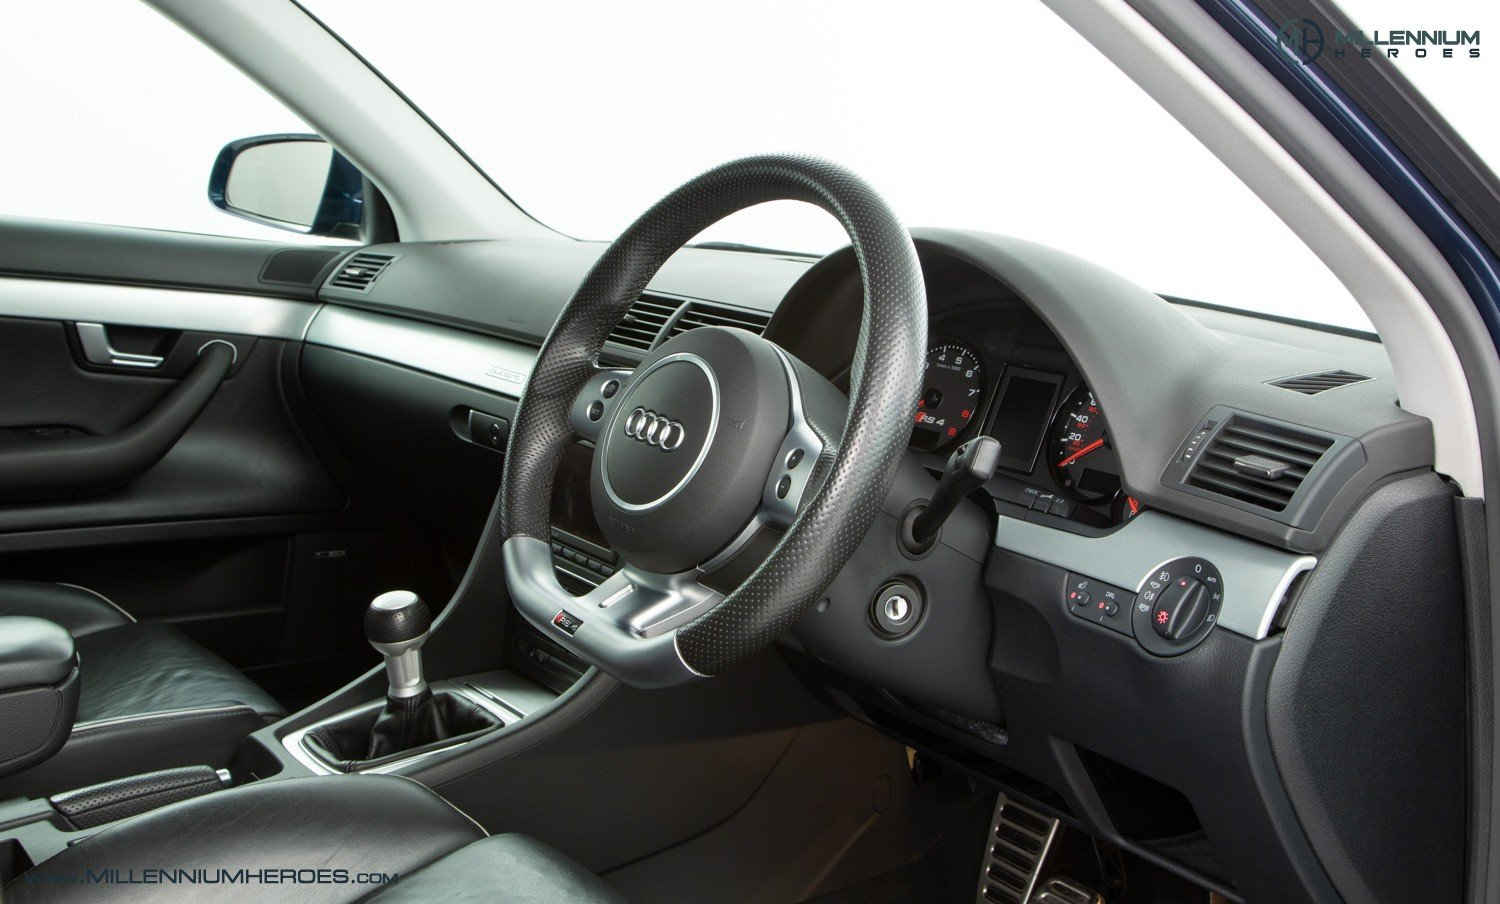 2007 AUDI B7 RS4 SALOON // EXCELLENT HISTORY // MUGELLO BLUE For Sale (picture 4 of 6)